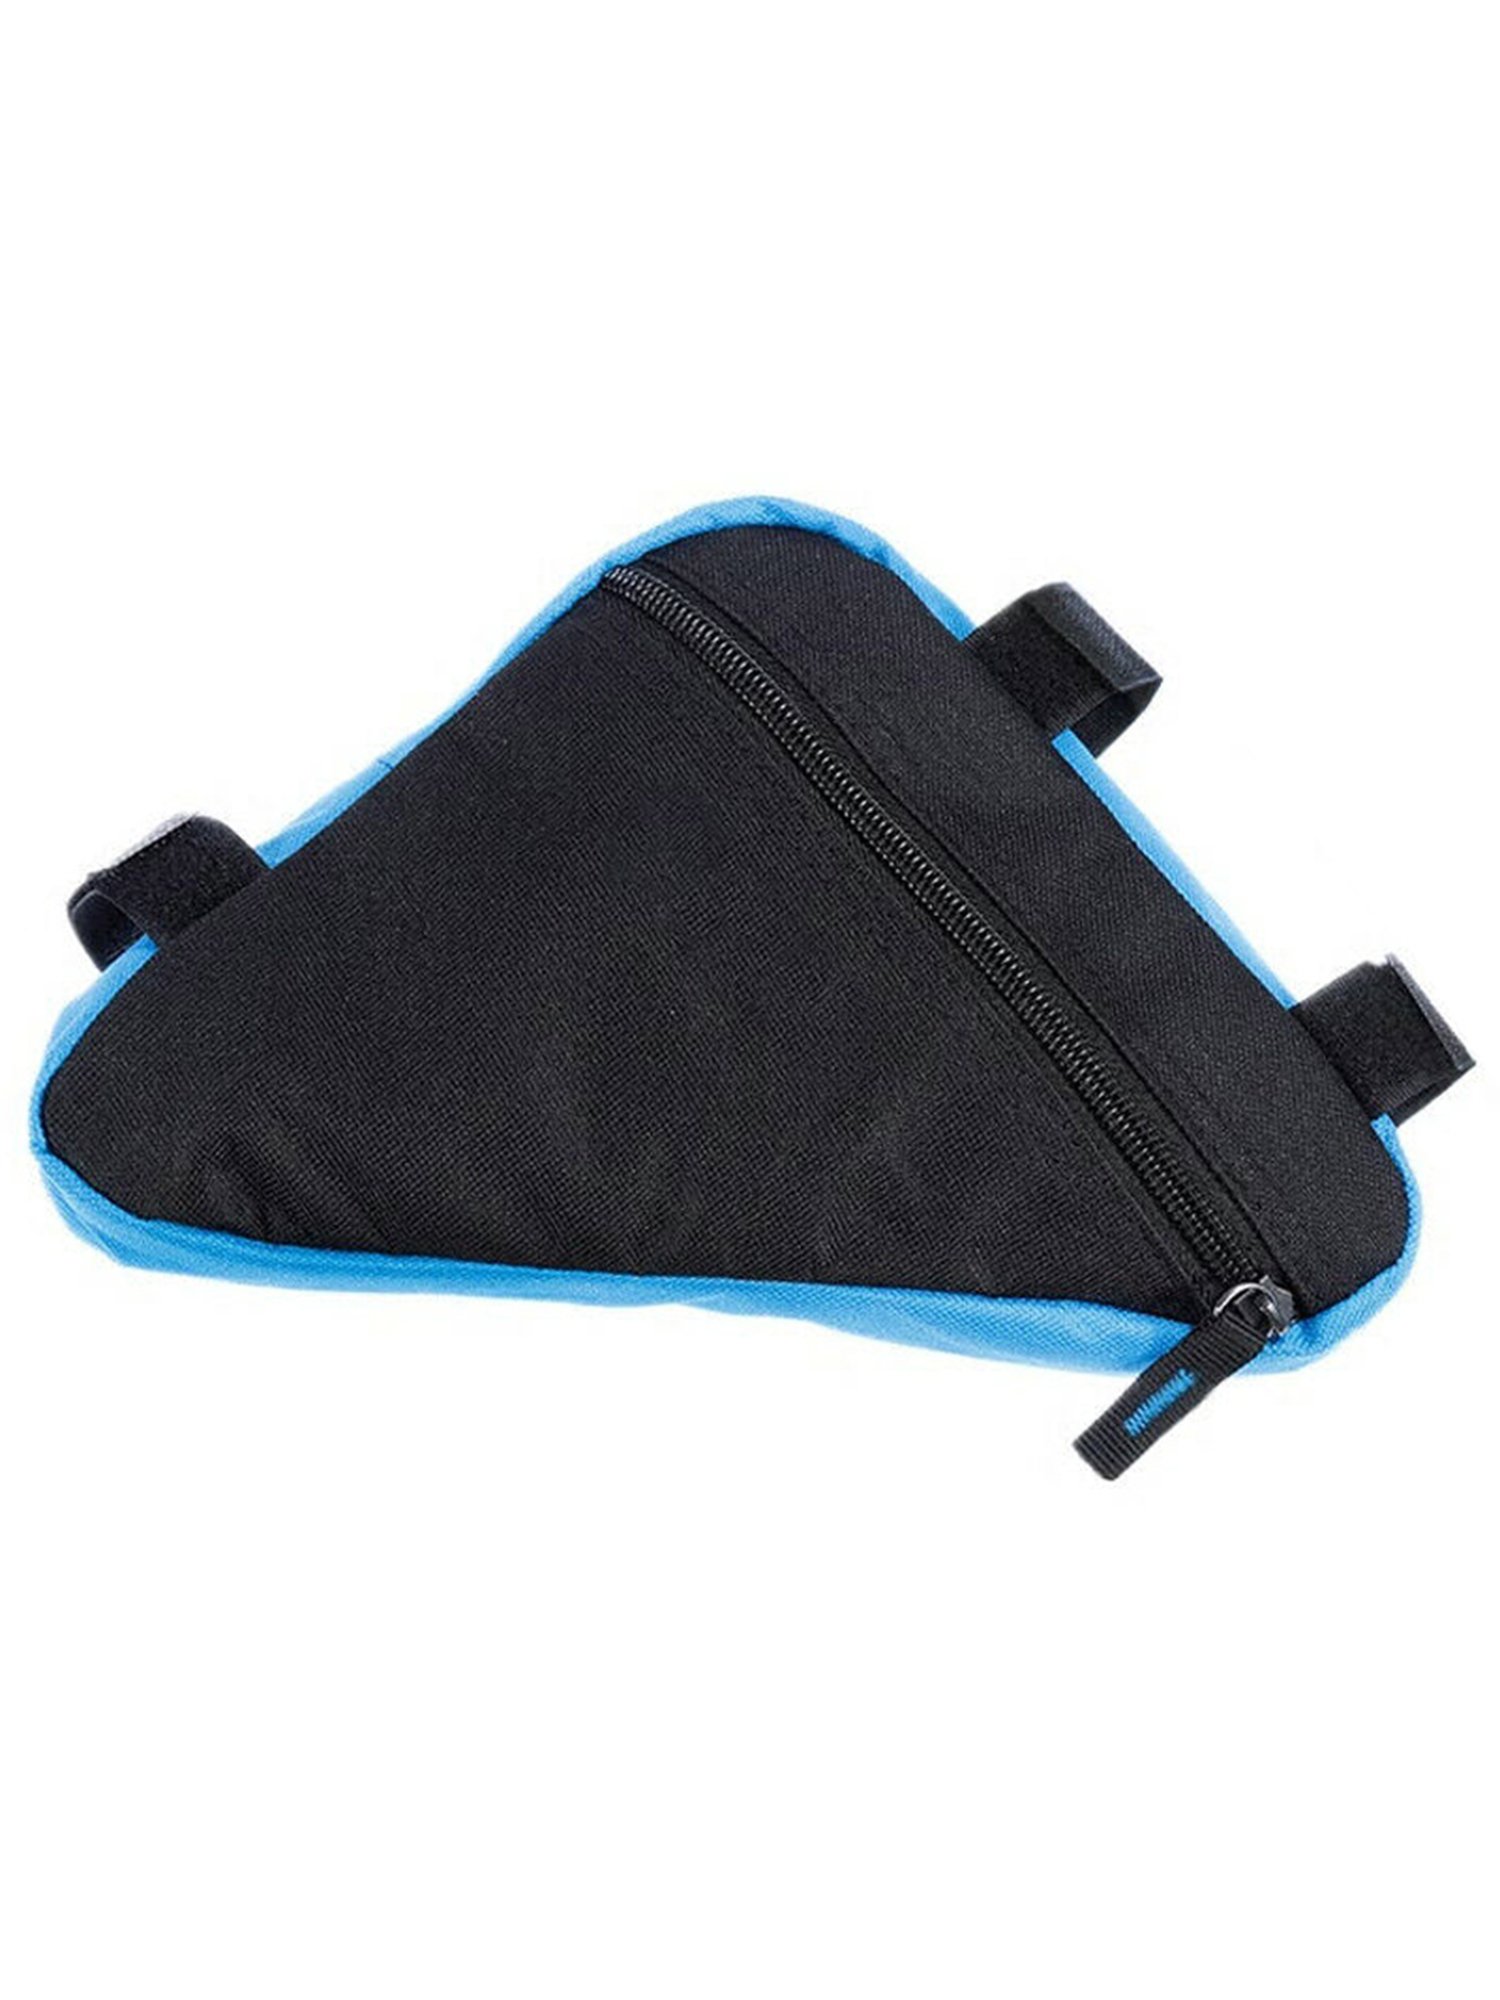 Cycling Road Bike Zipper Bicycle Small Bags Storage MTB Front Tube Pack Pouch